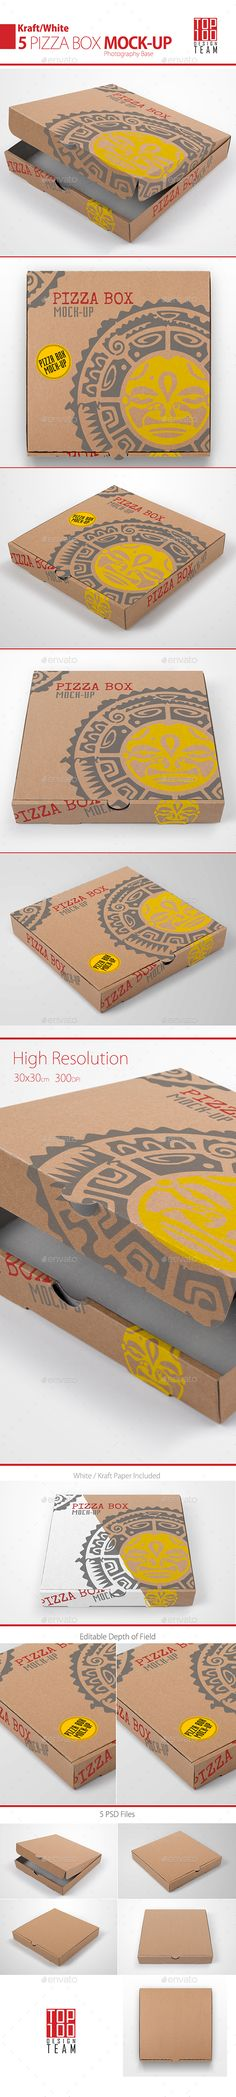 Pizza Box Mock-up by Top100team Create a realistic display for your Pizza Box design in few seconds. Items Included:5 Photo-realistic presentationsPhotoshop CS4